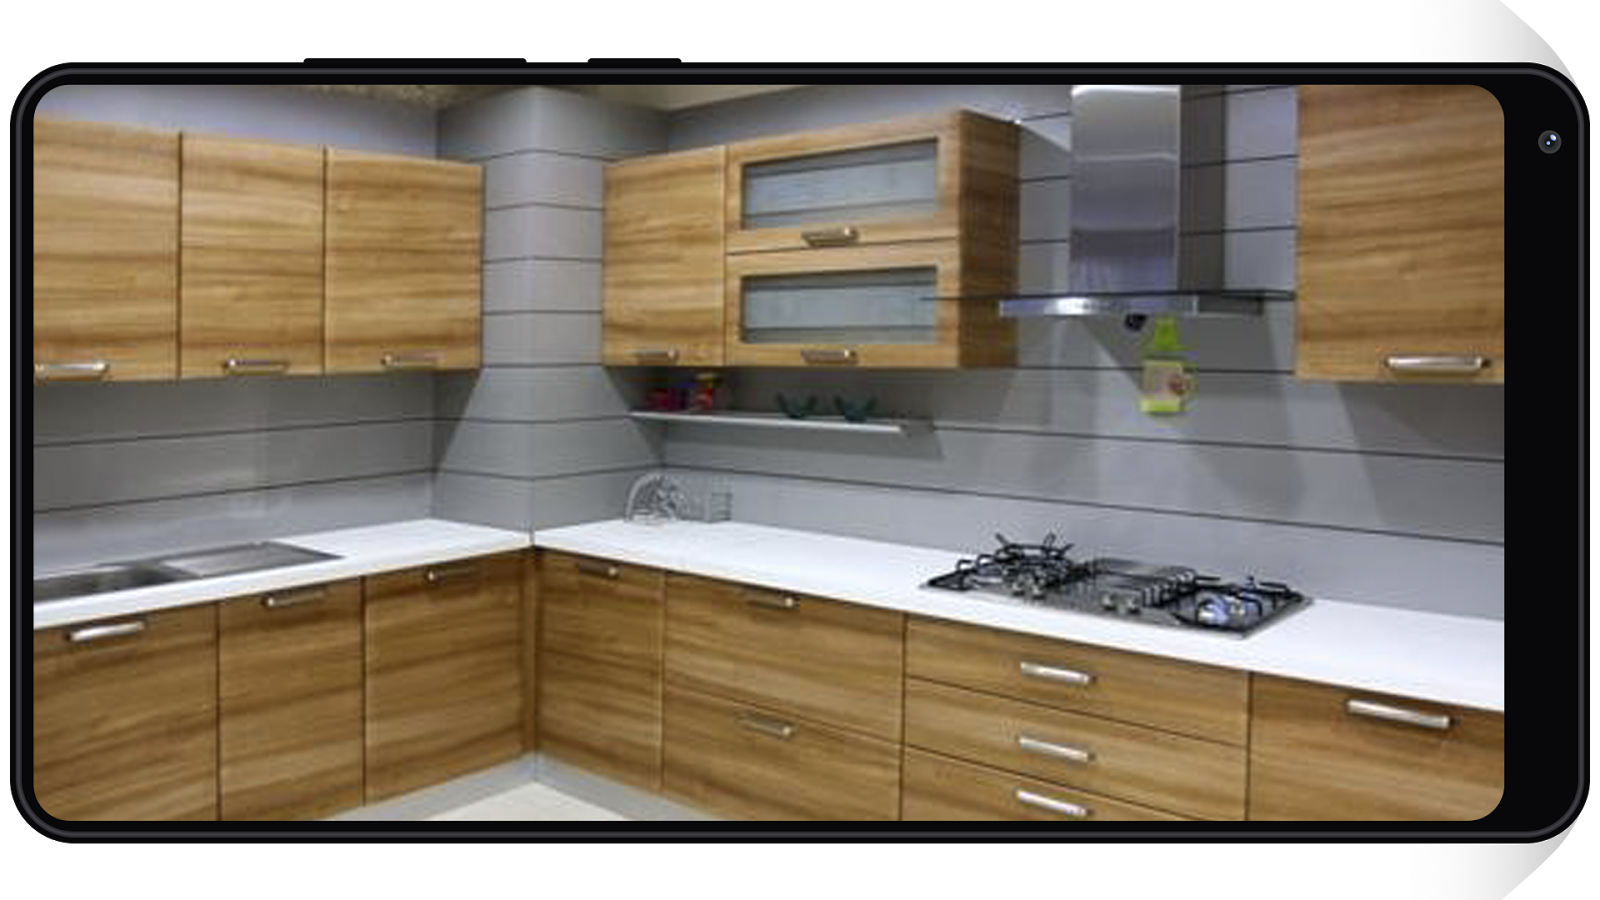 Latest Kitchens Designs 2018 - Android Apps on Google Play